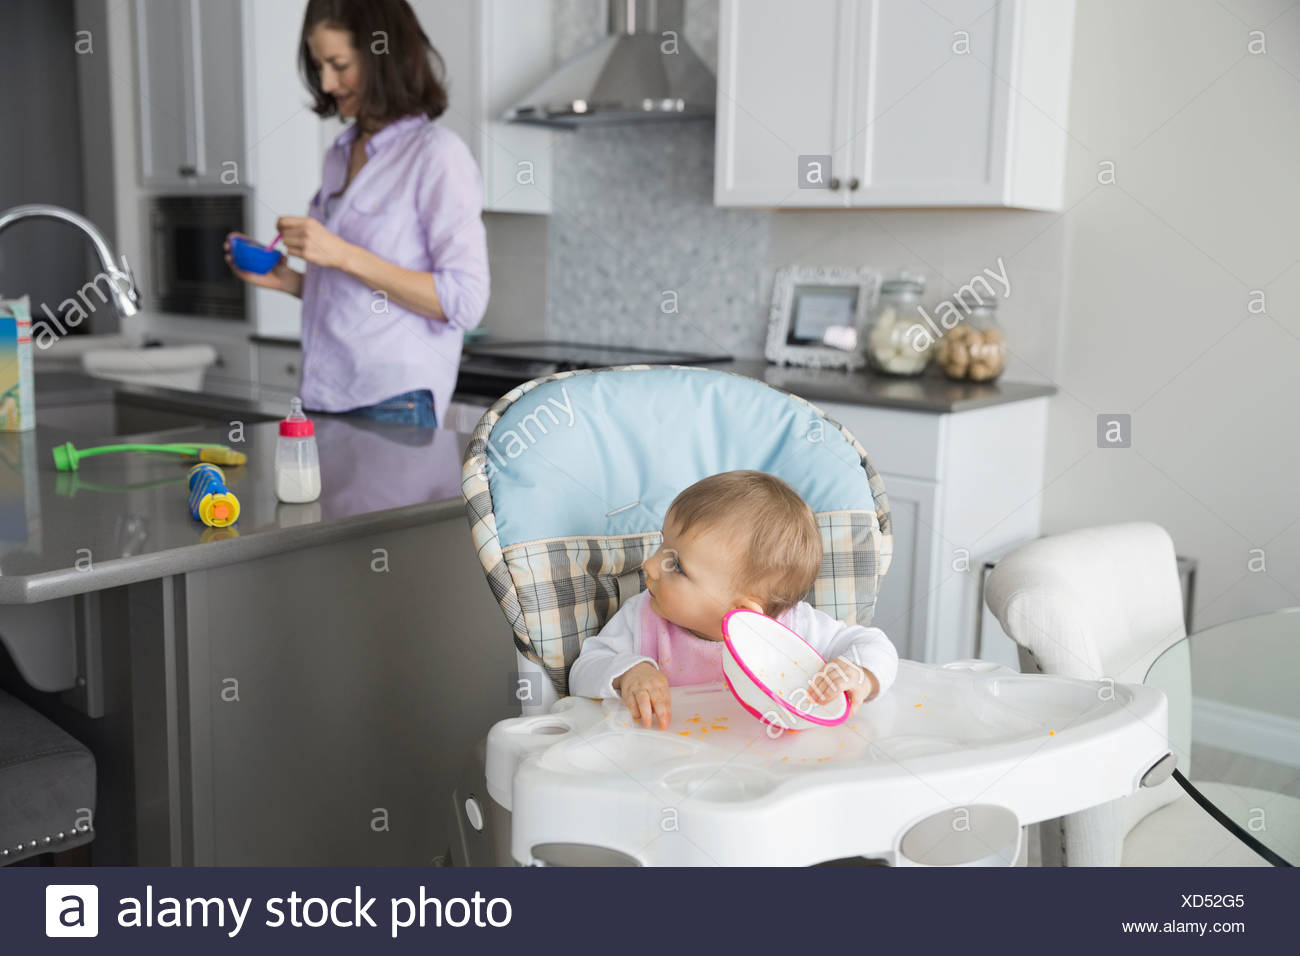 Cute baby girl with mother in kitchen - Stock Image